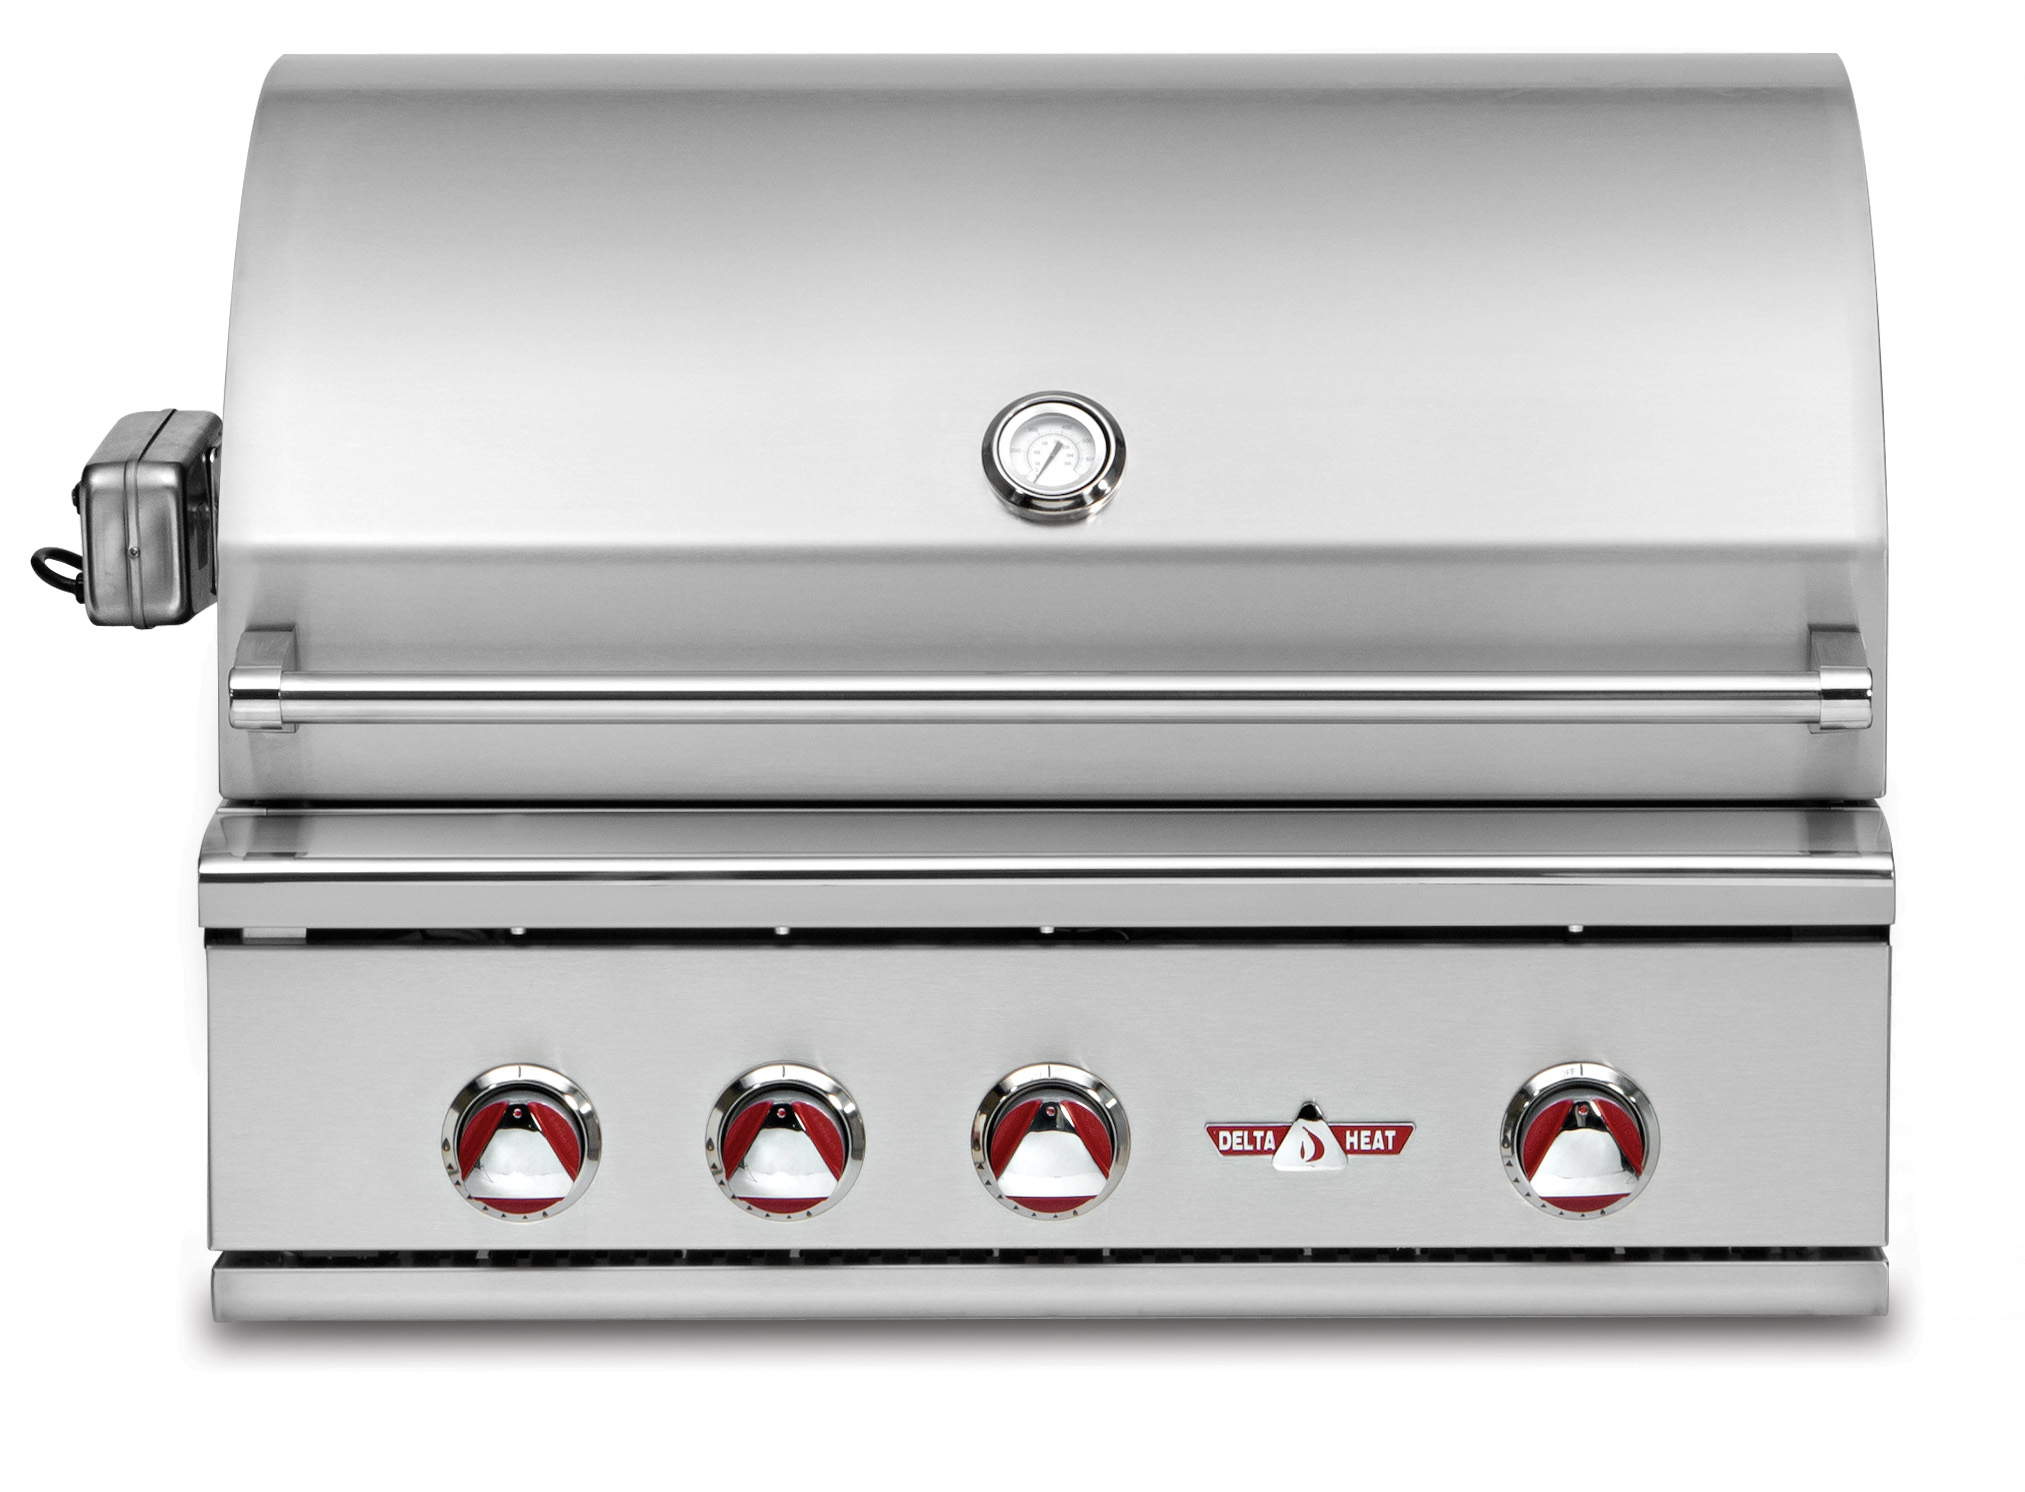 "Delta Heat 32"" Built-in Grill"